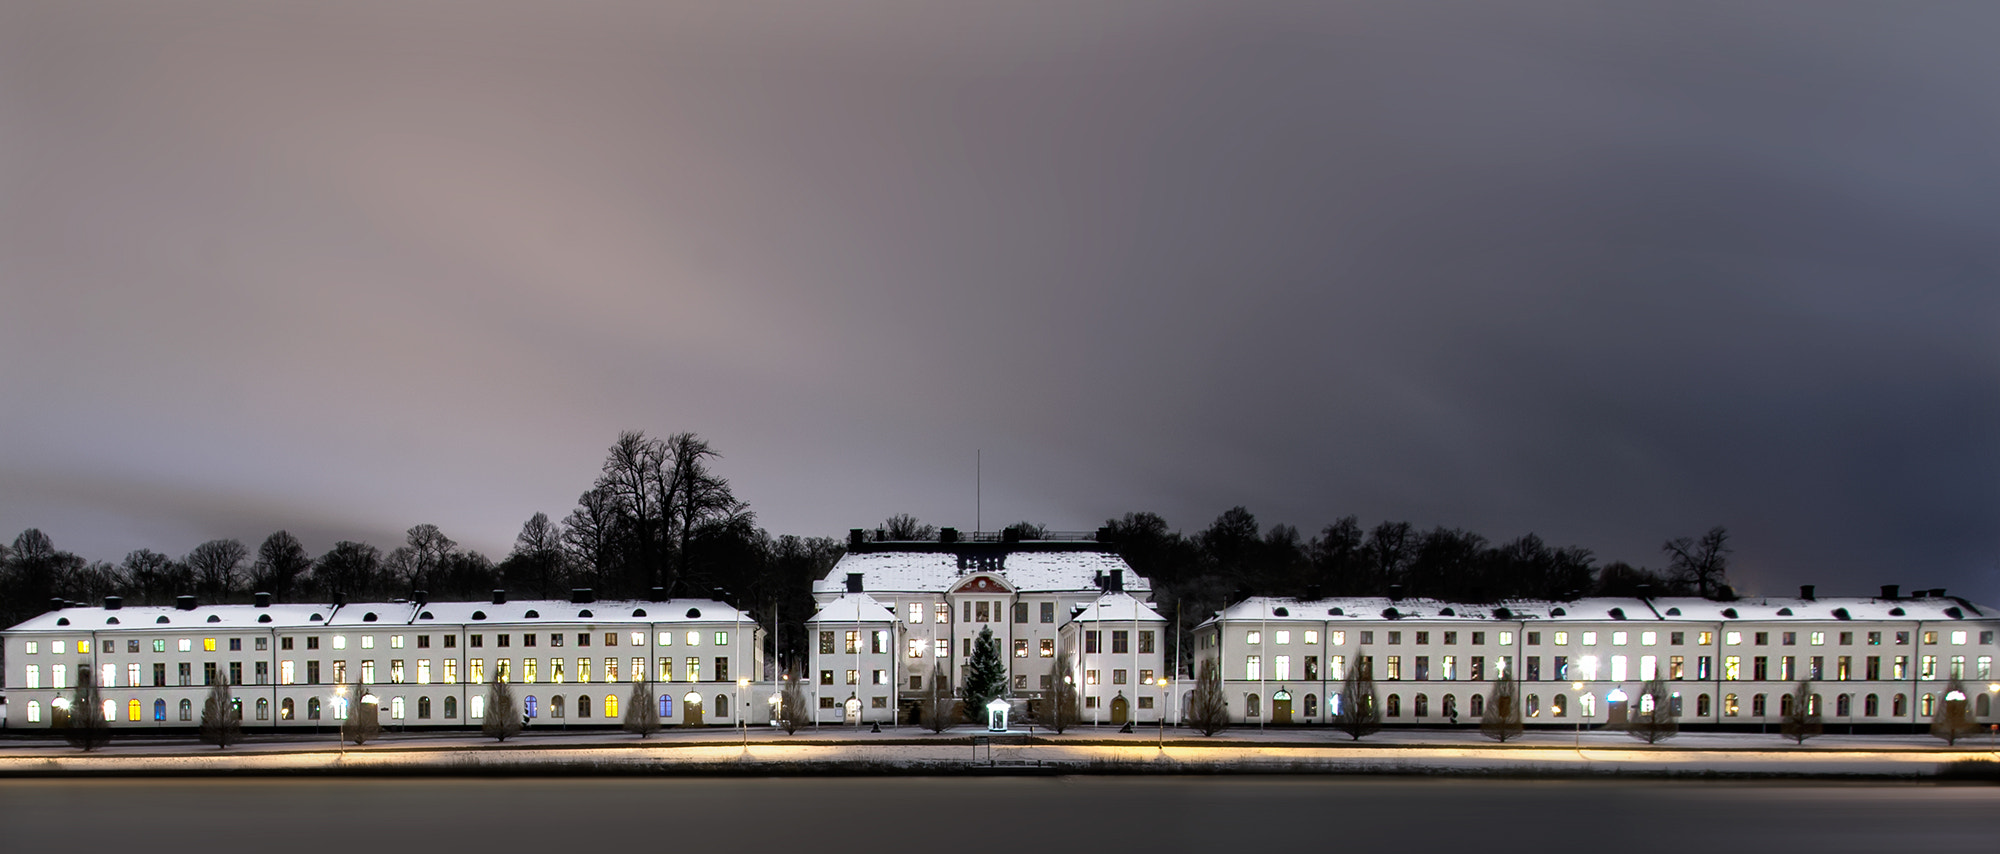 Photograph Military Academy Karlberg, Sweden by Mikael Sundberg on 500px